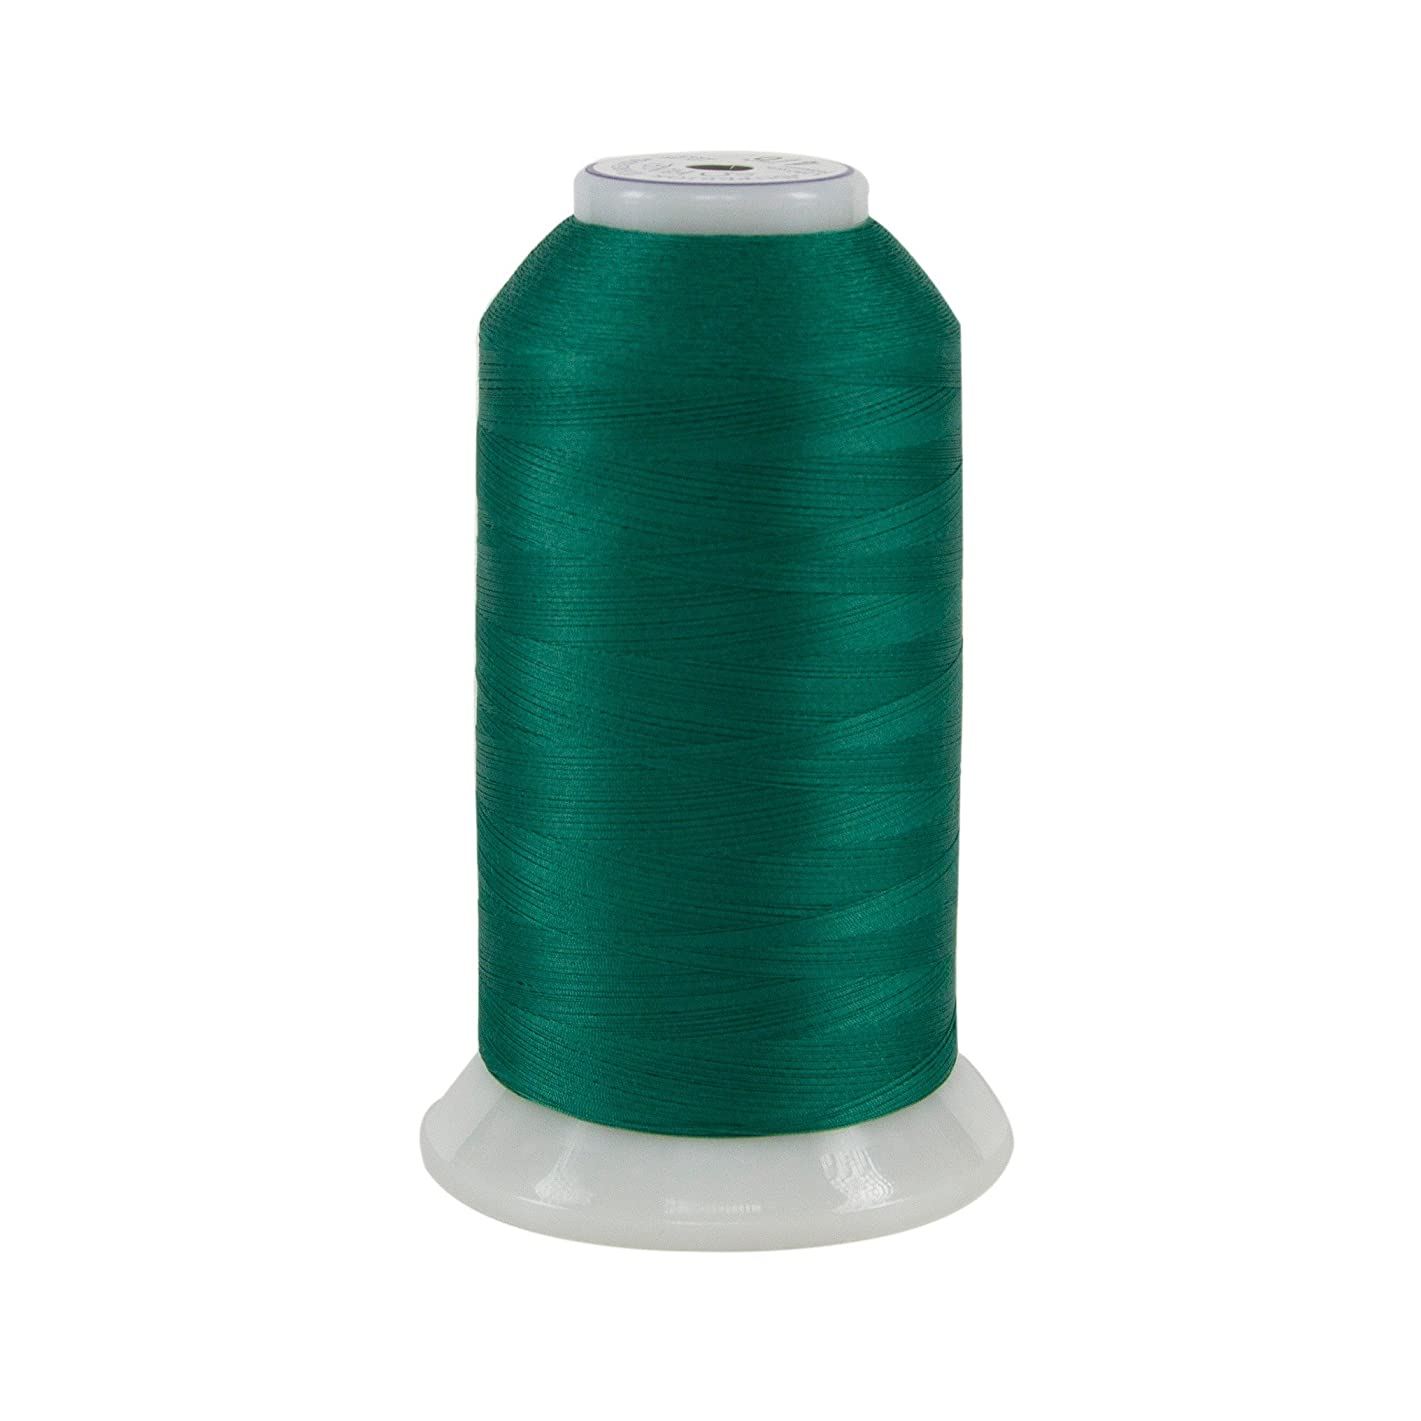 Superior Threads 11602-476 So Fine Kate Green 3-Ply 50W Polyester Thread, 3280 yd